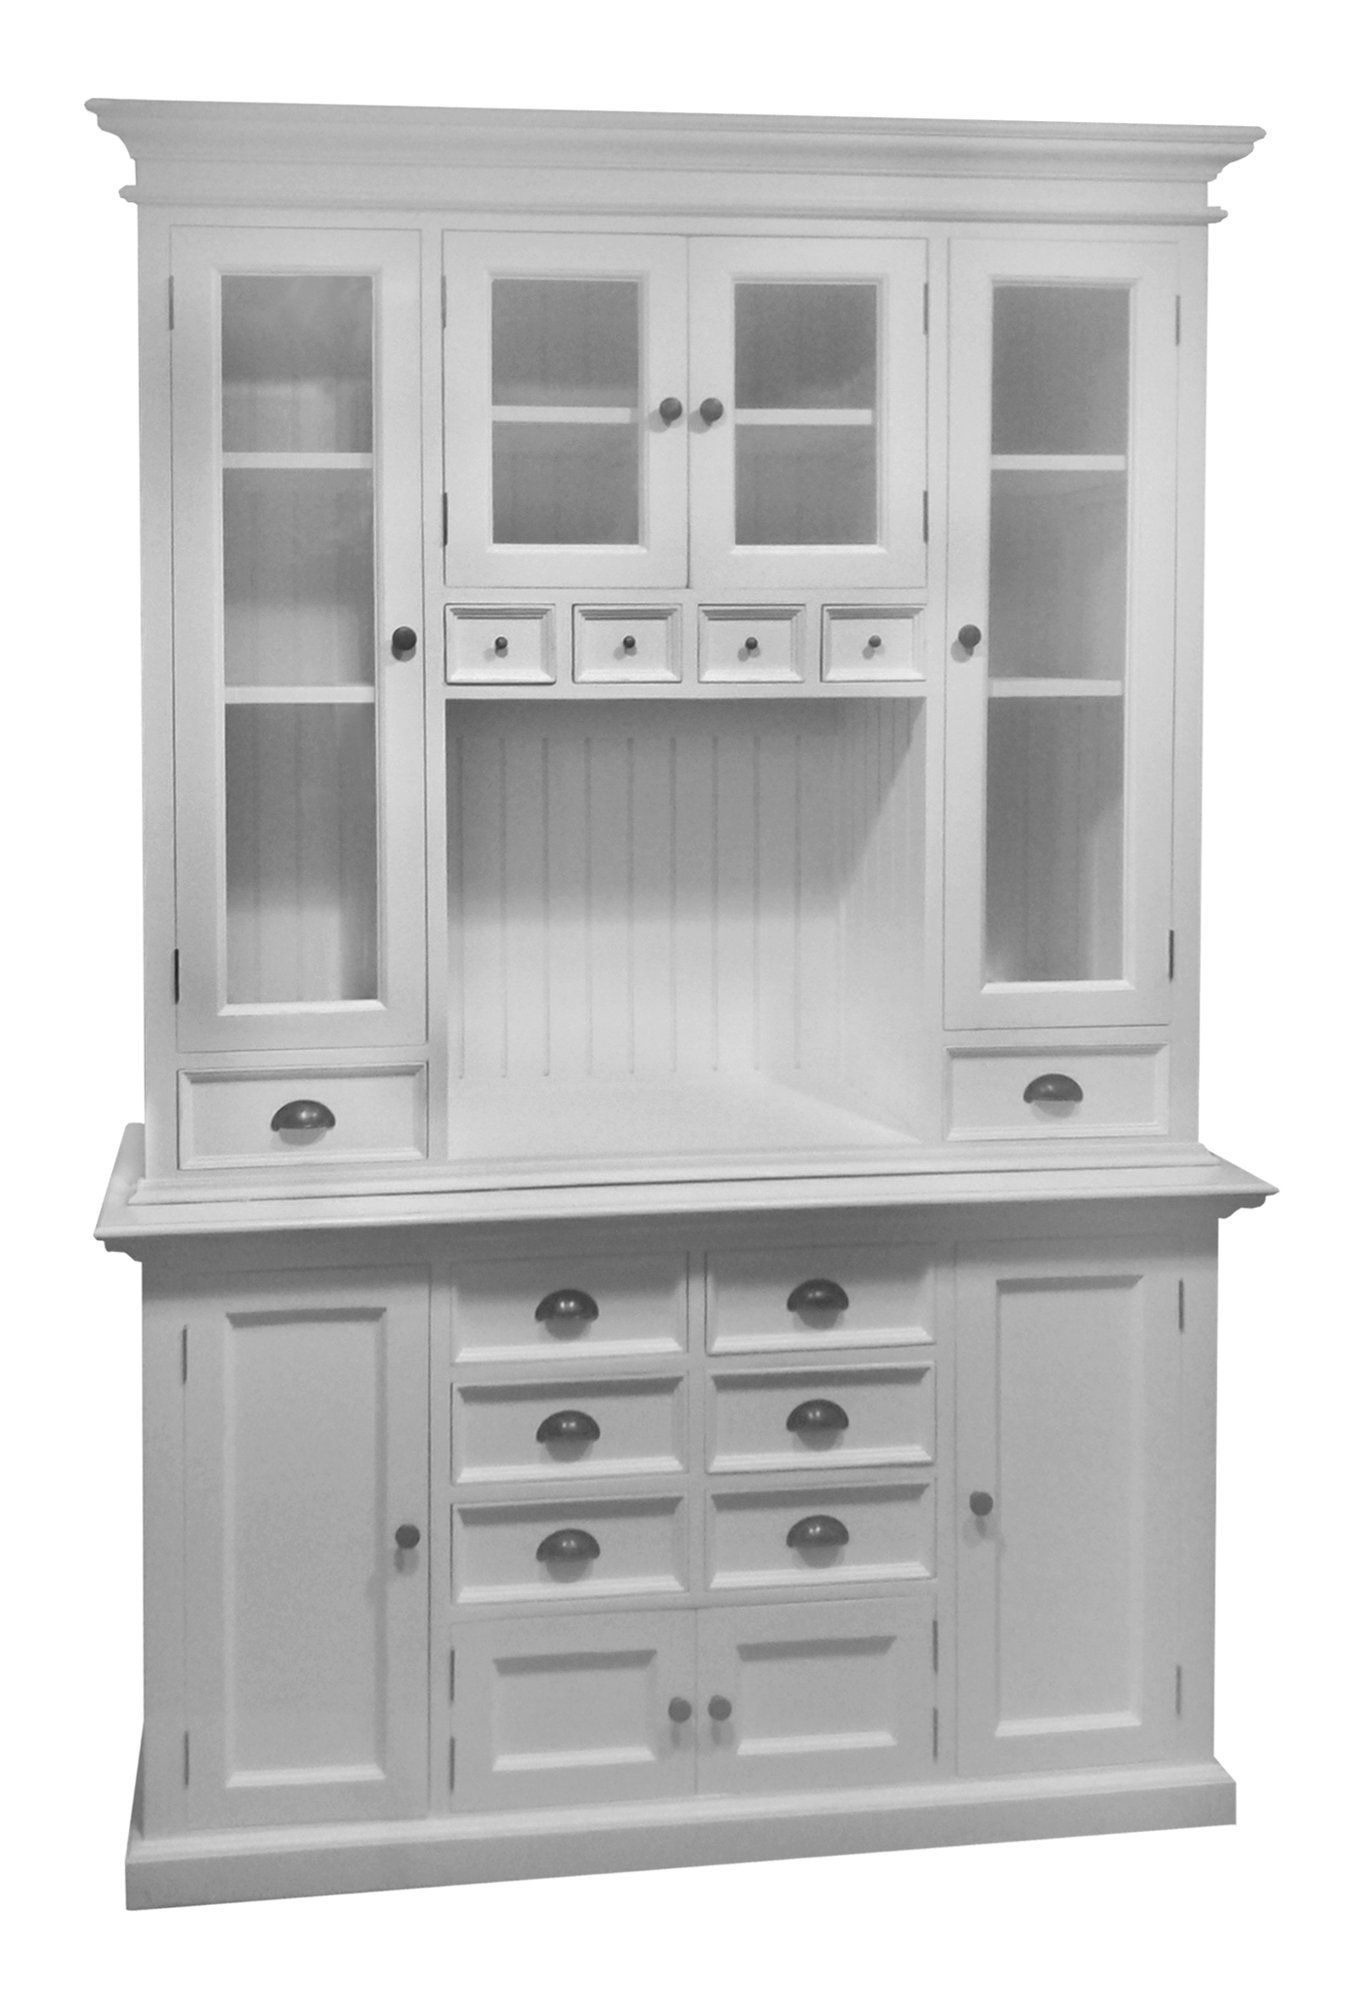 Pantry cabinet Lowes - Amityville Kitchen China Cabinet ...